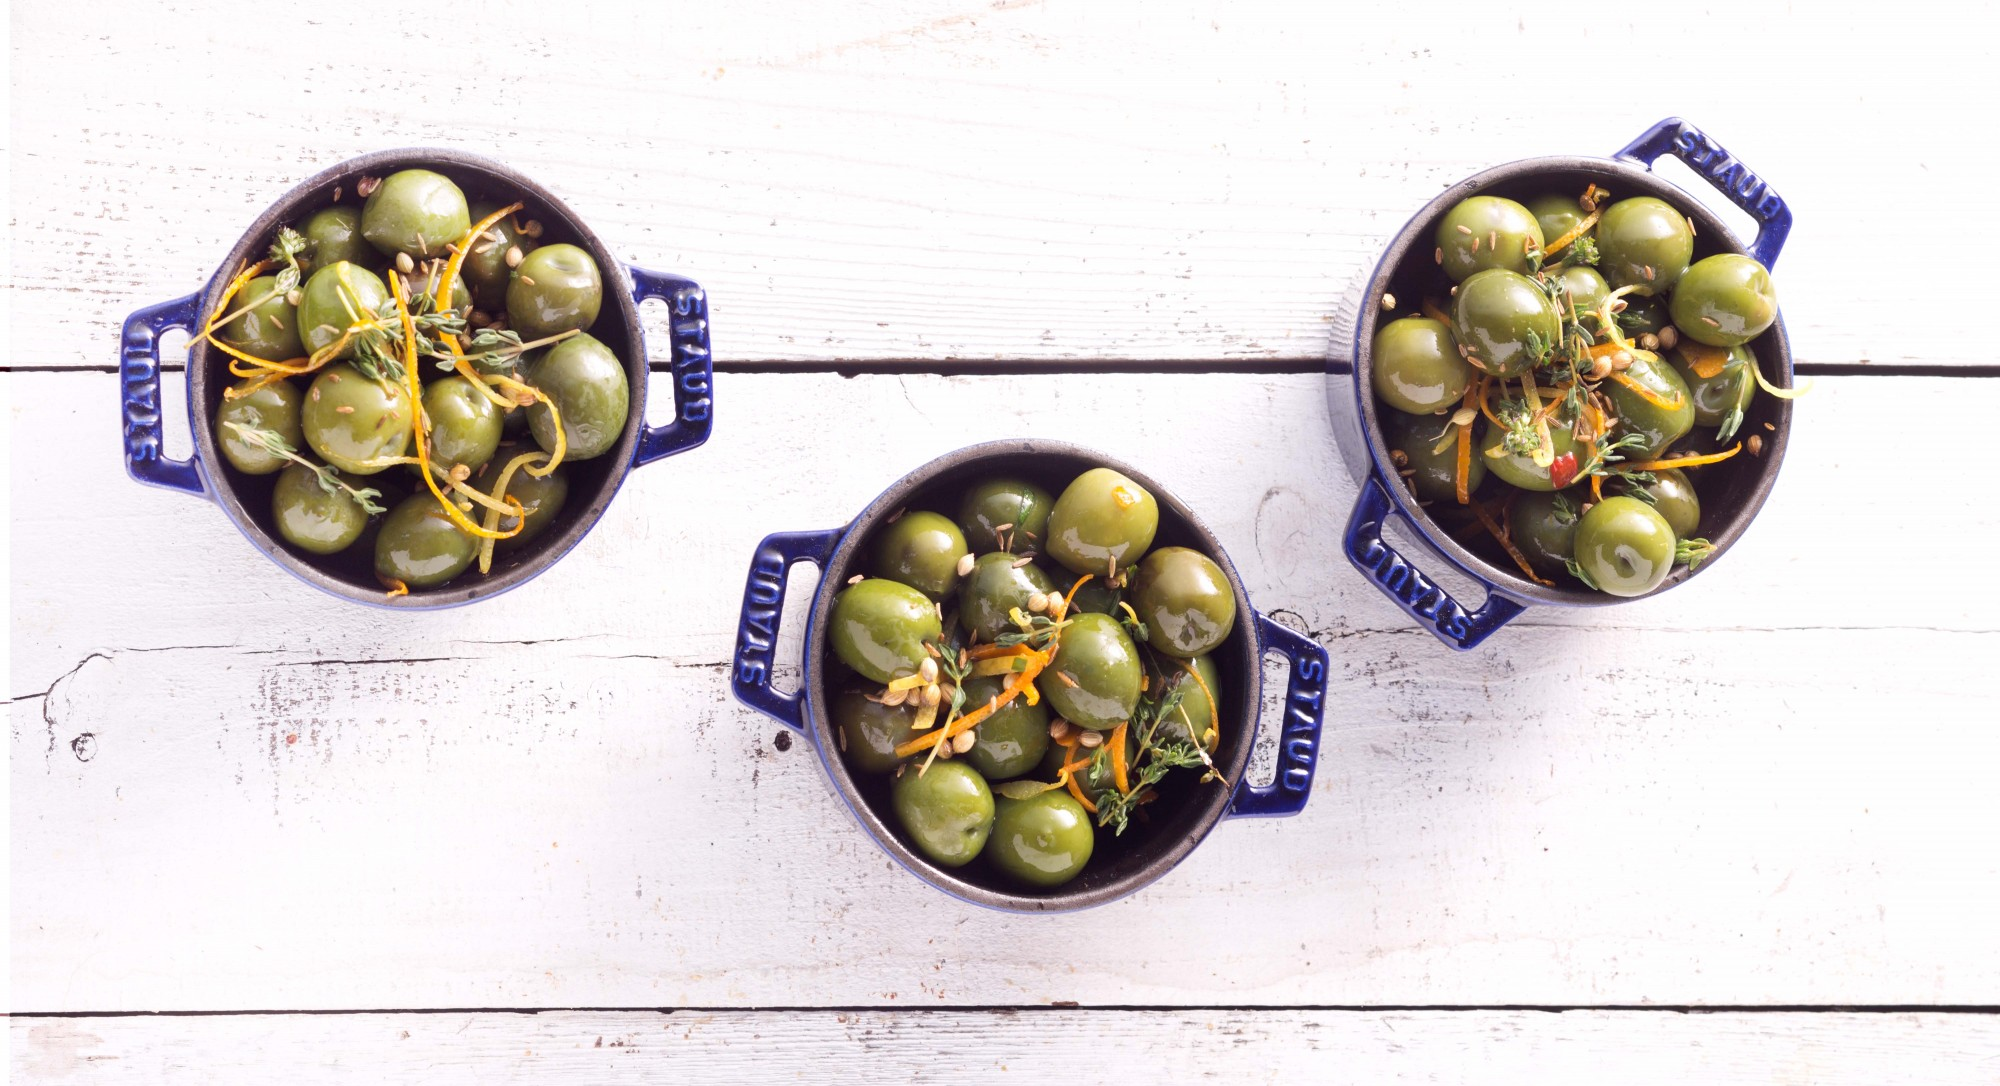 Green Olives Marinated in Spices Make an Elegant Holiday Appetizer